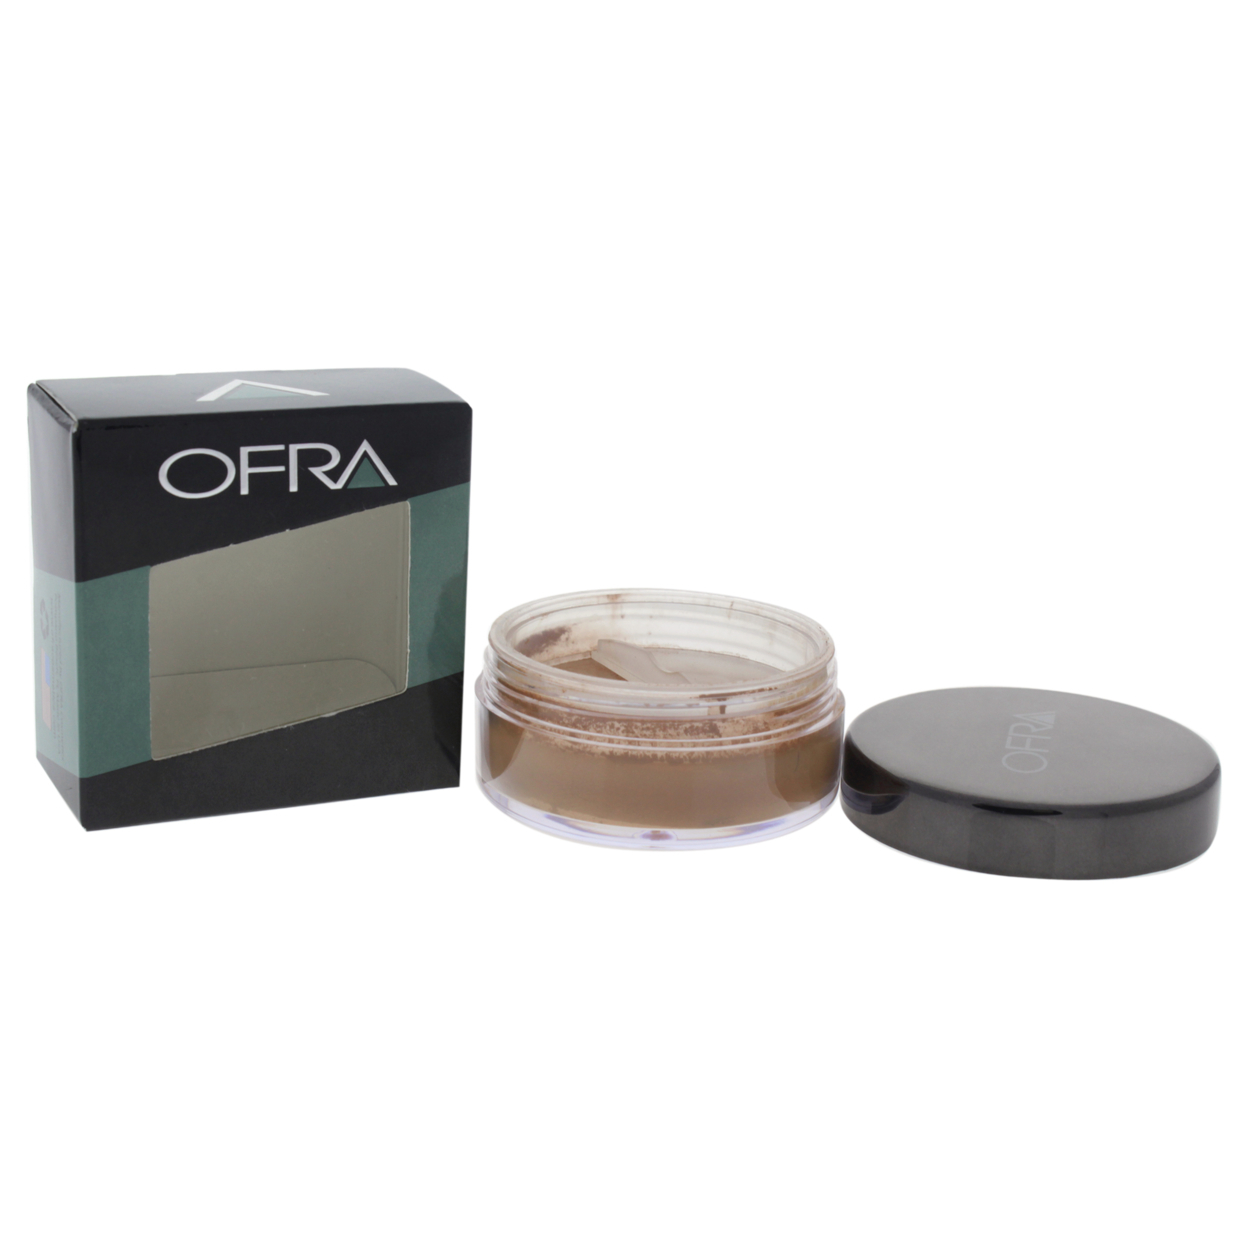 Acne Treatment Loose Mineral Powder Nevada By Ofra For Women 0.2 Oz Powder